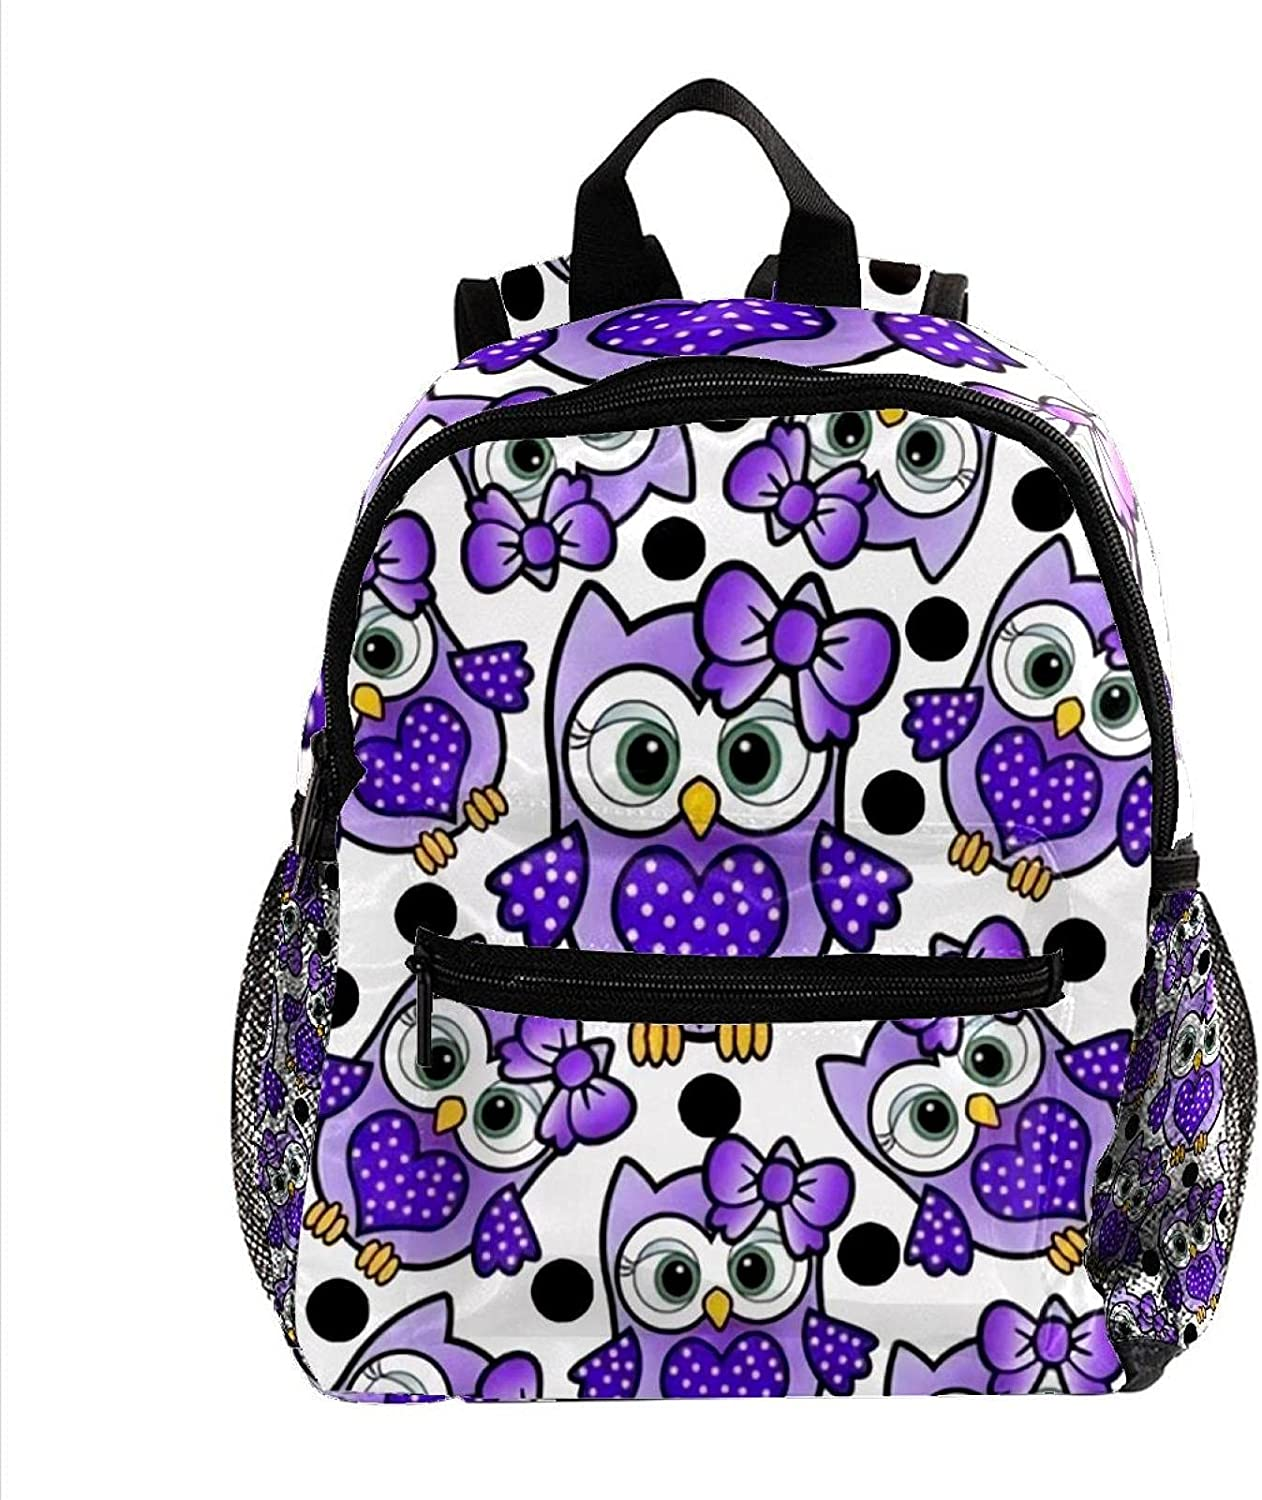 Purple Birds and Hearts Children's excellence Excellent rucksack backpack mini